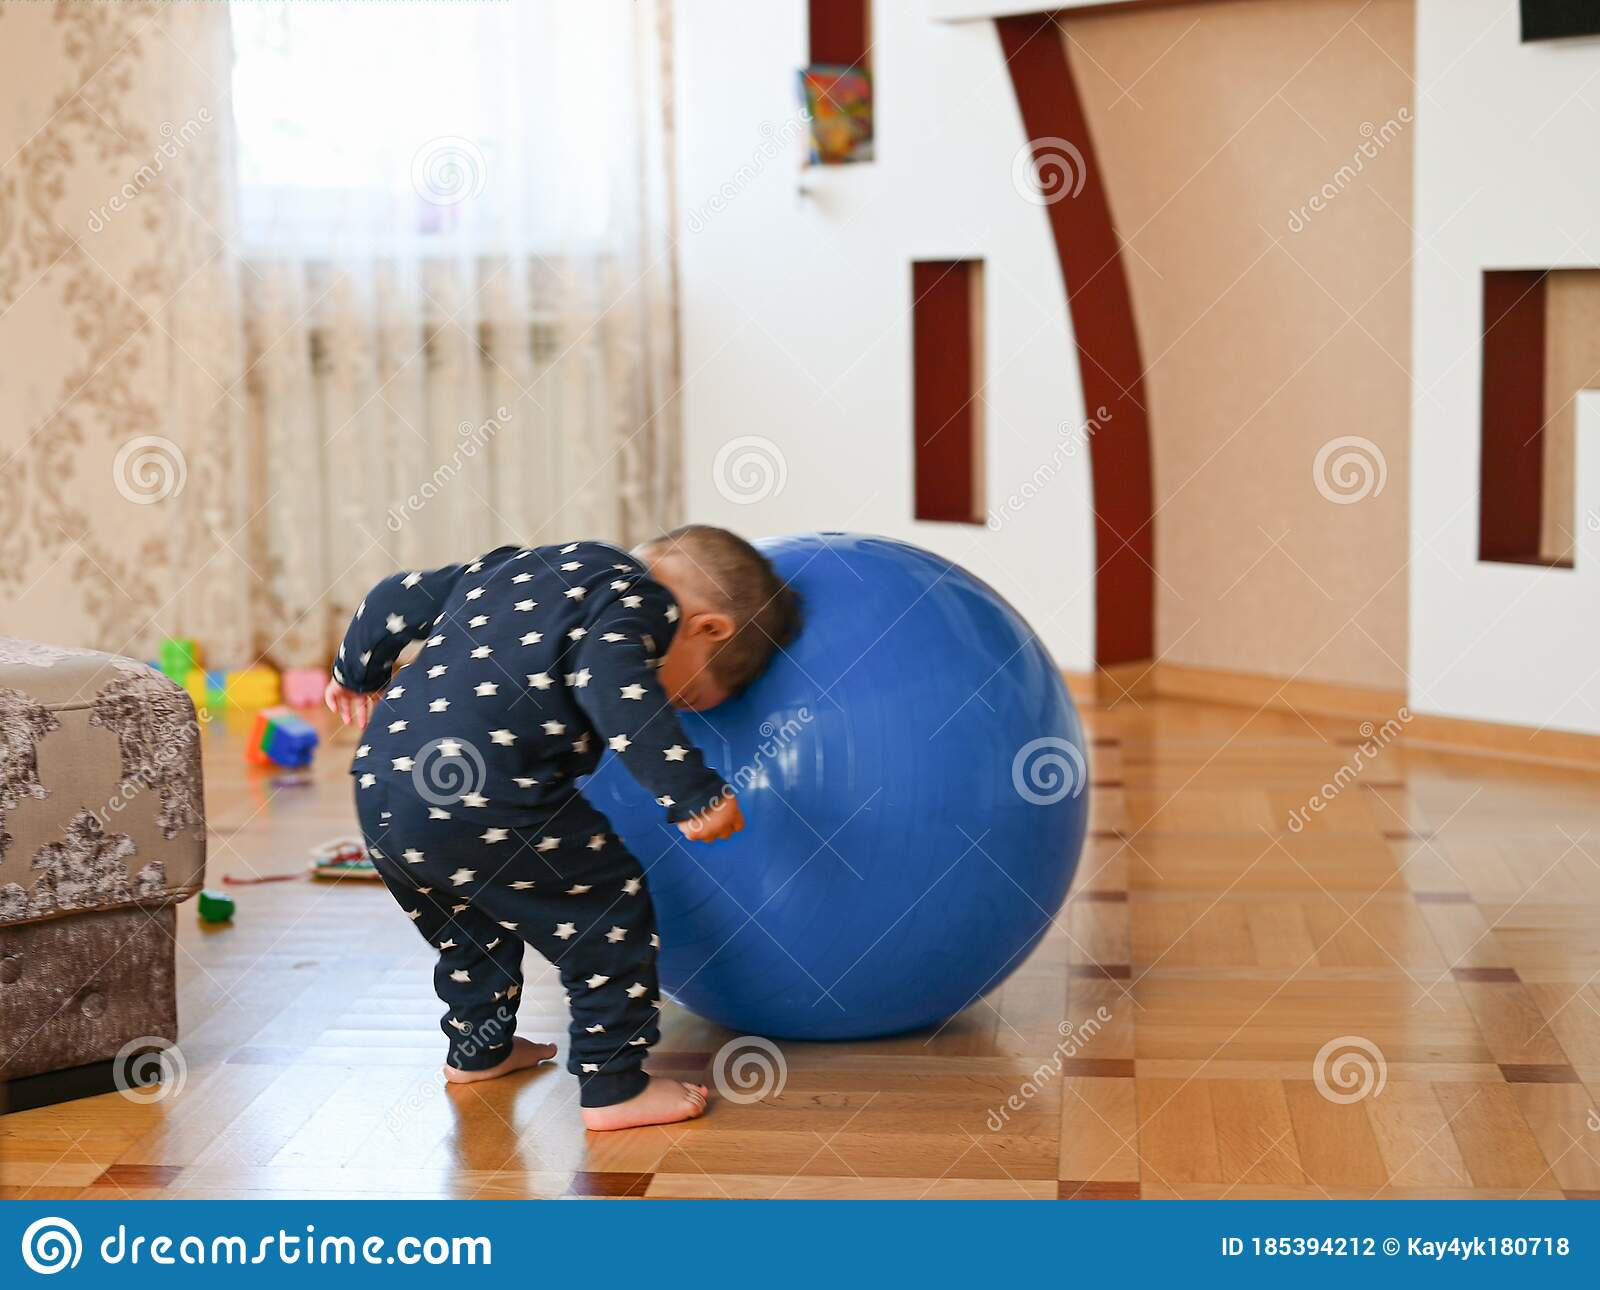 A Small Child Is Playing With A Ball. Baby Banging His ...